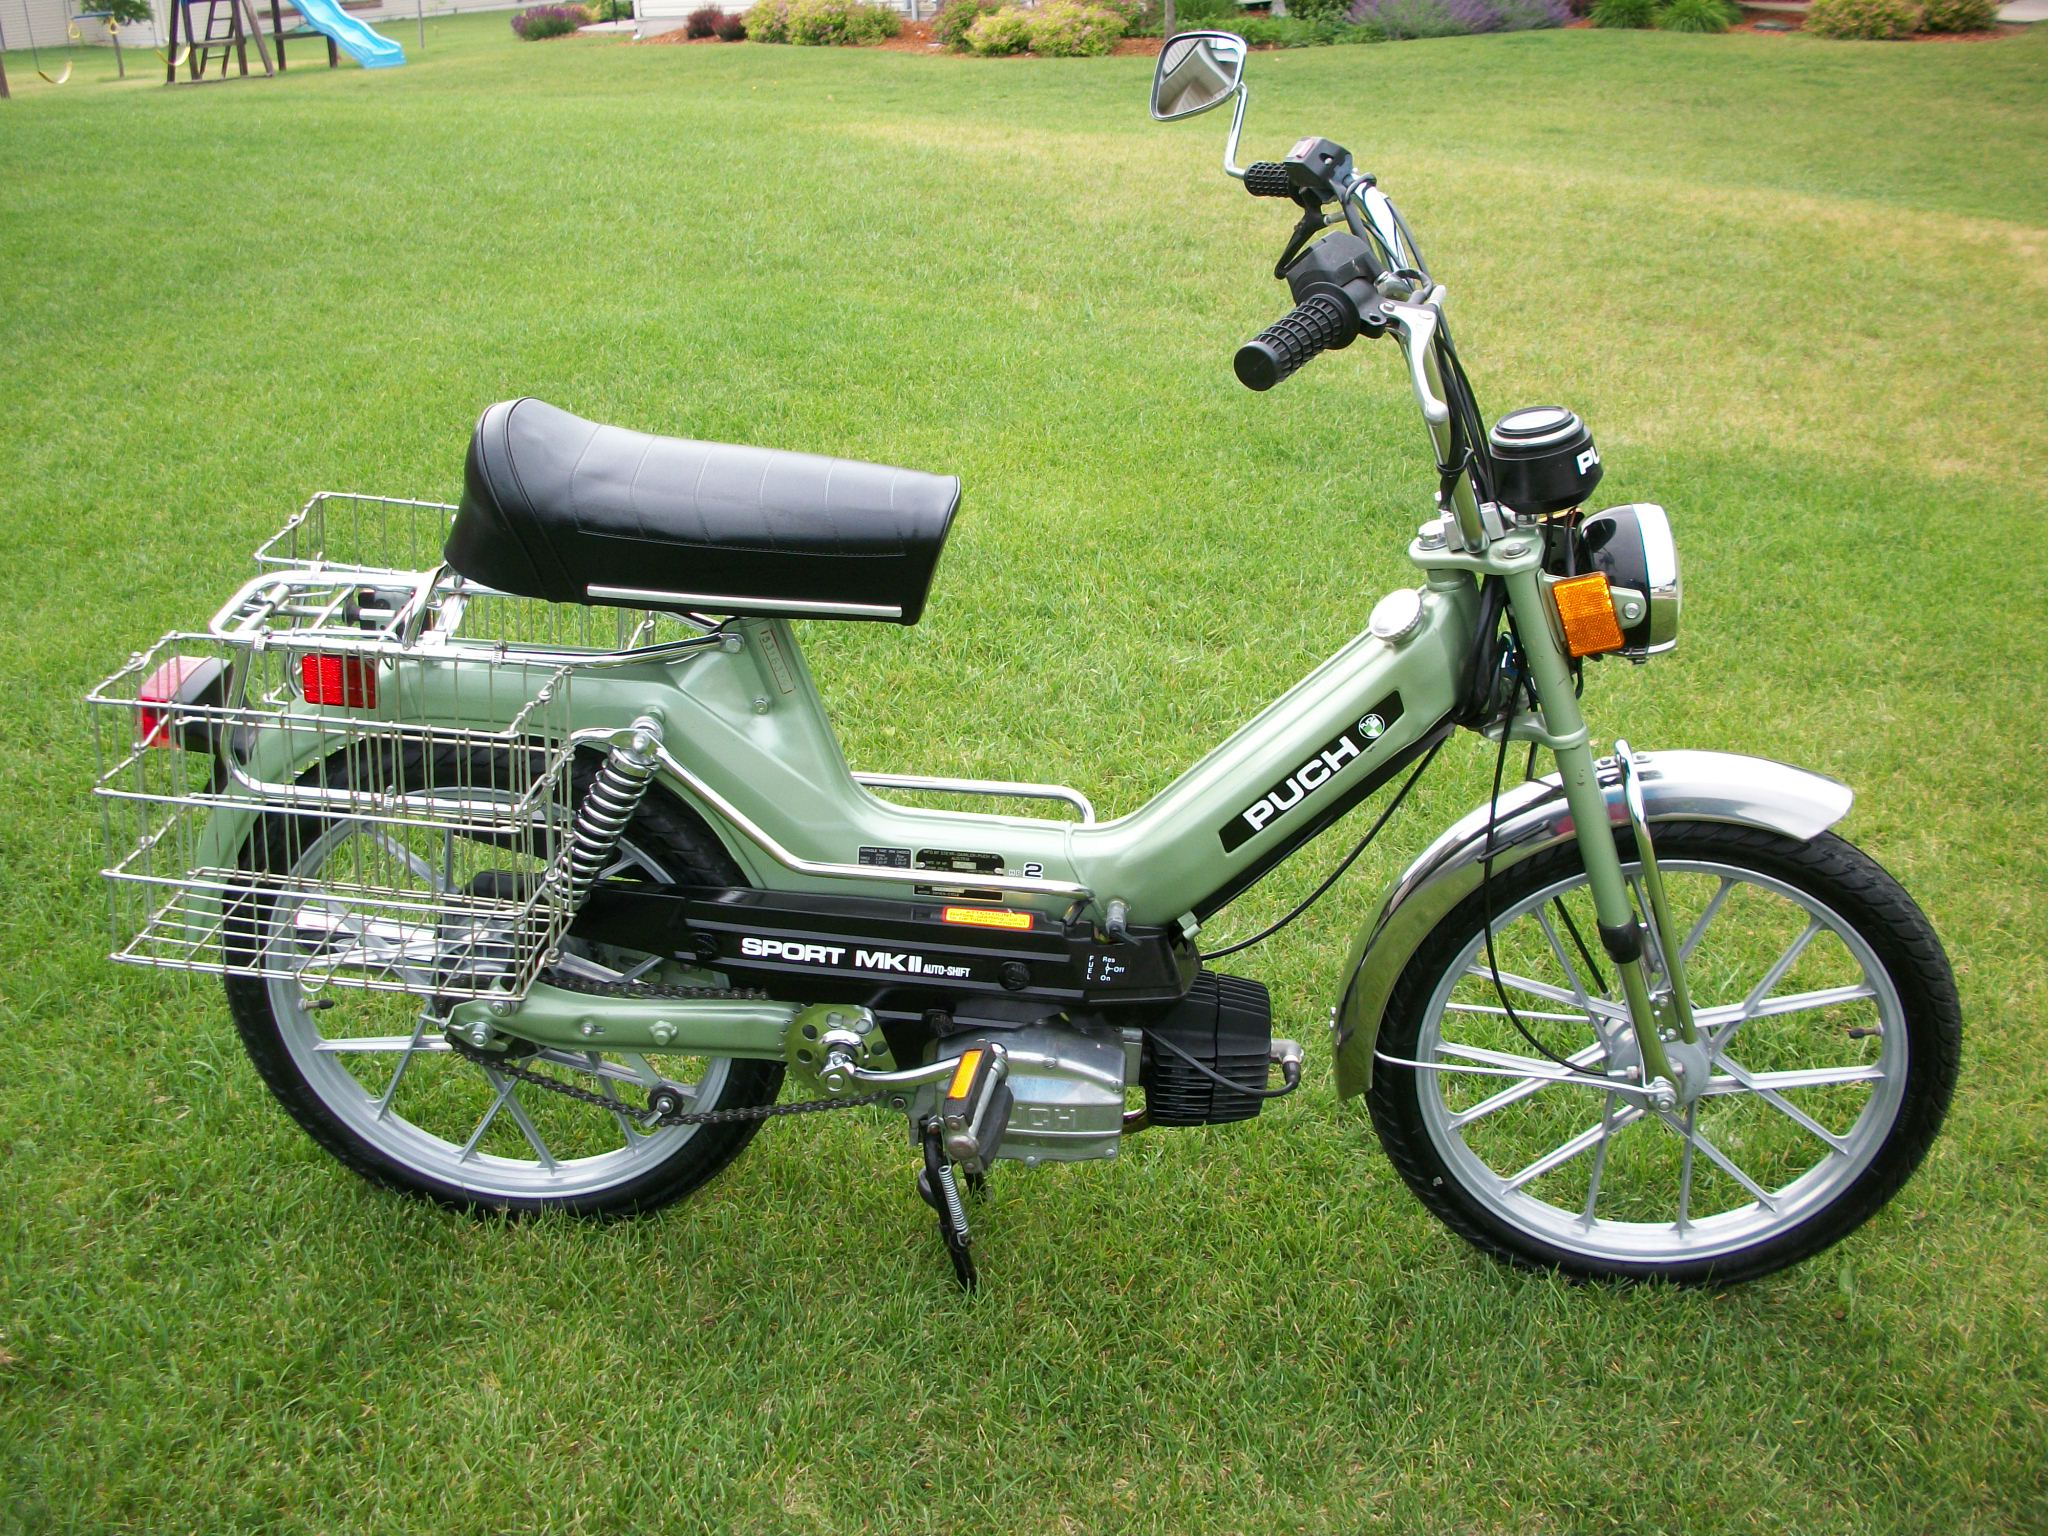 Moped Dealers Used Archives San Antonio Motorcycle And Scooter Wiring Diagram Puch Maxi Luxe Clutch